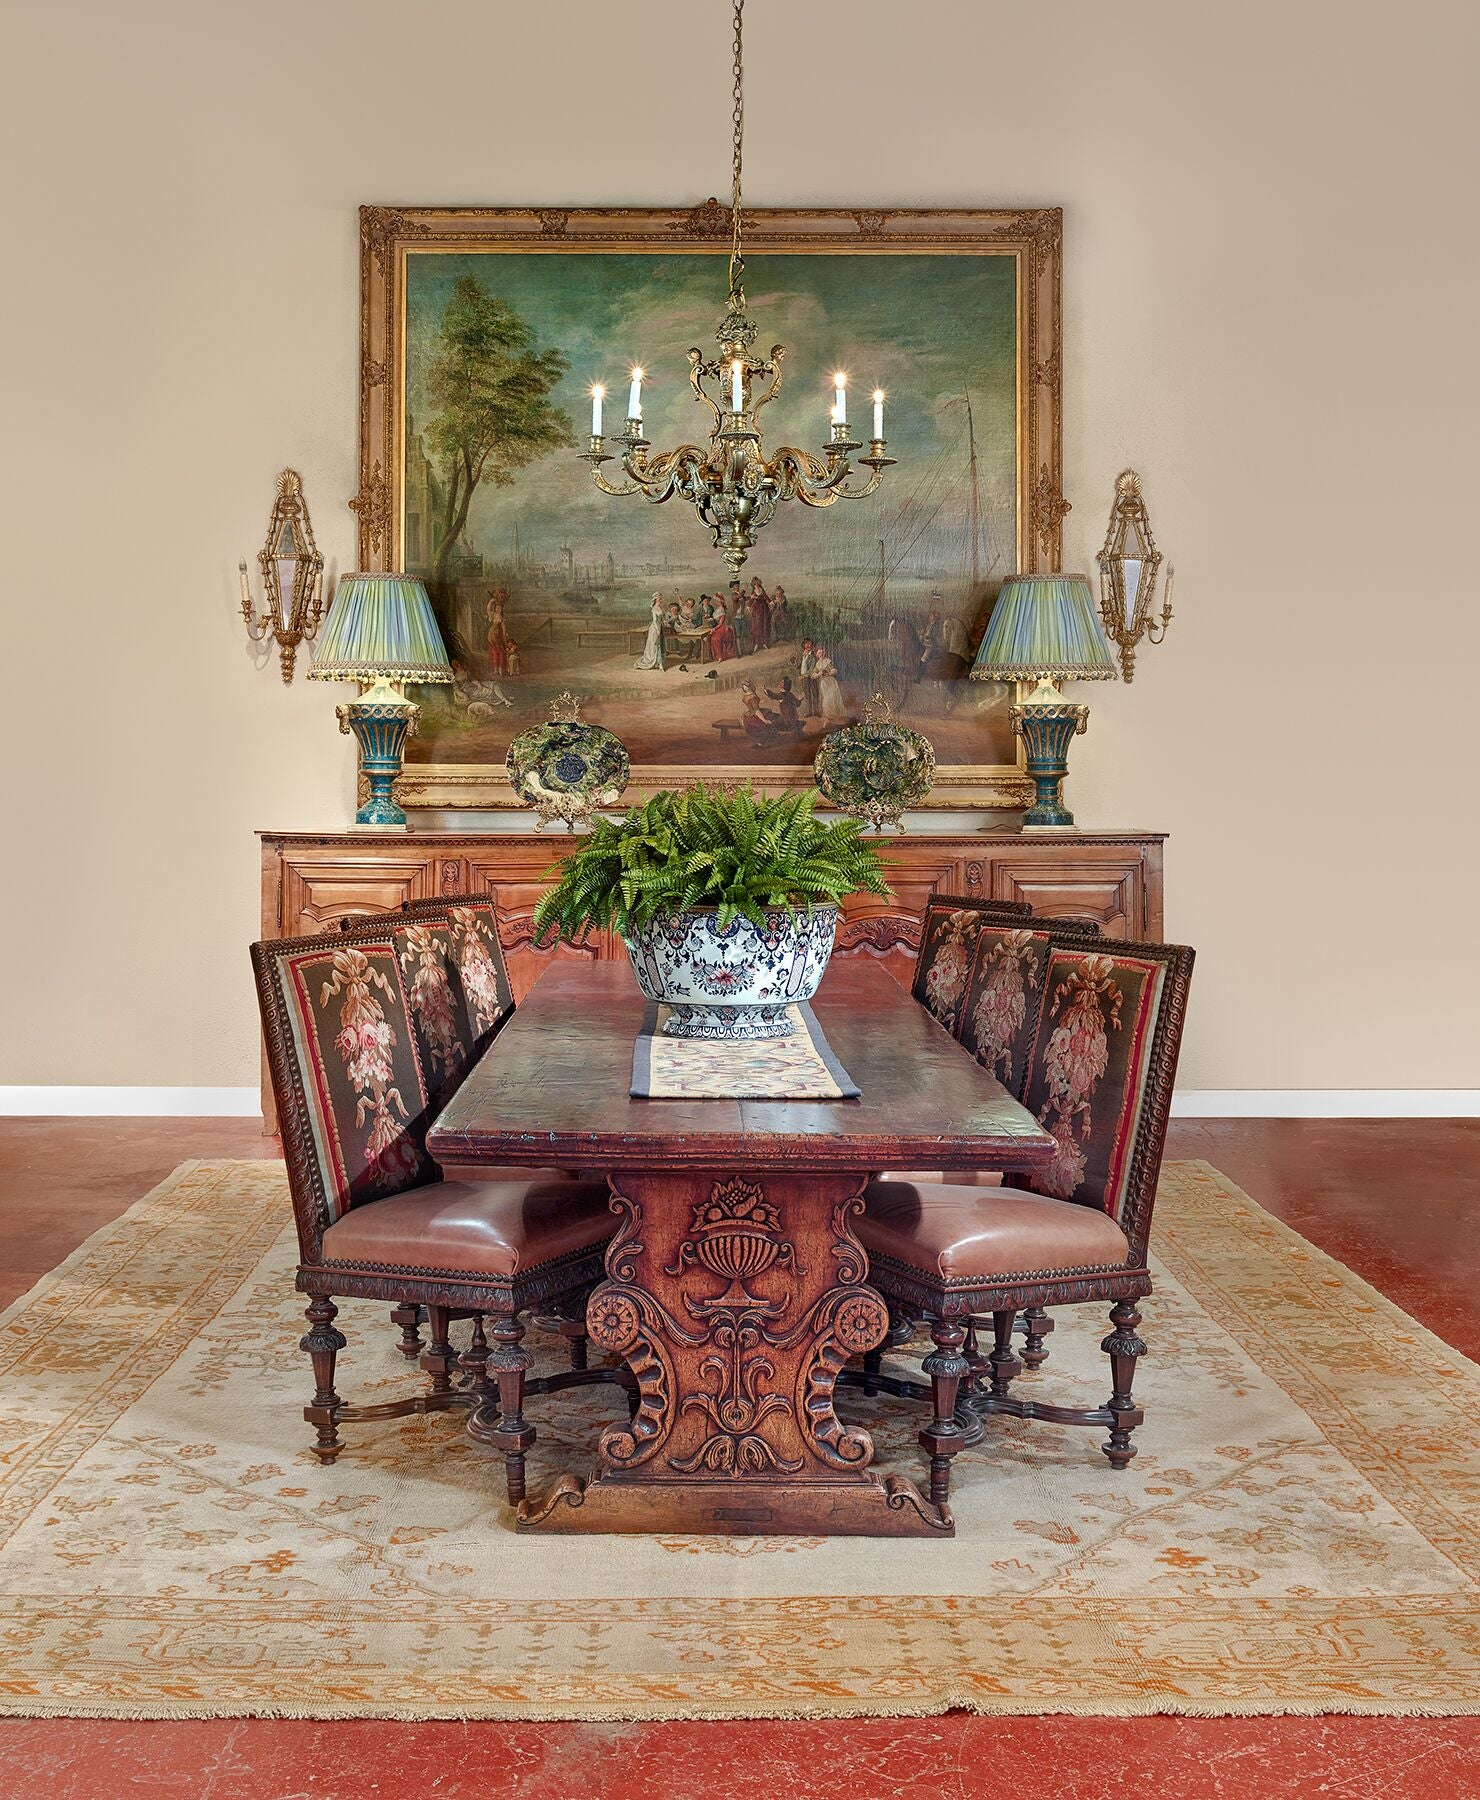 More About Country French Interiors